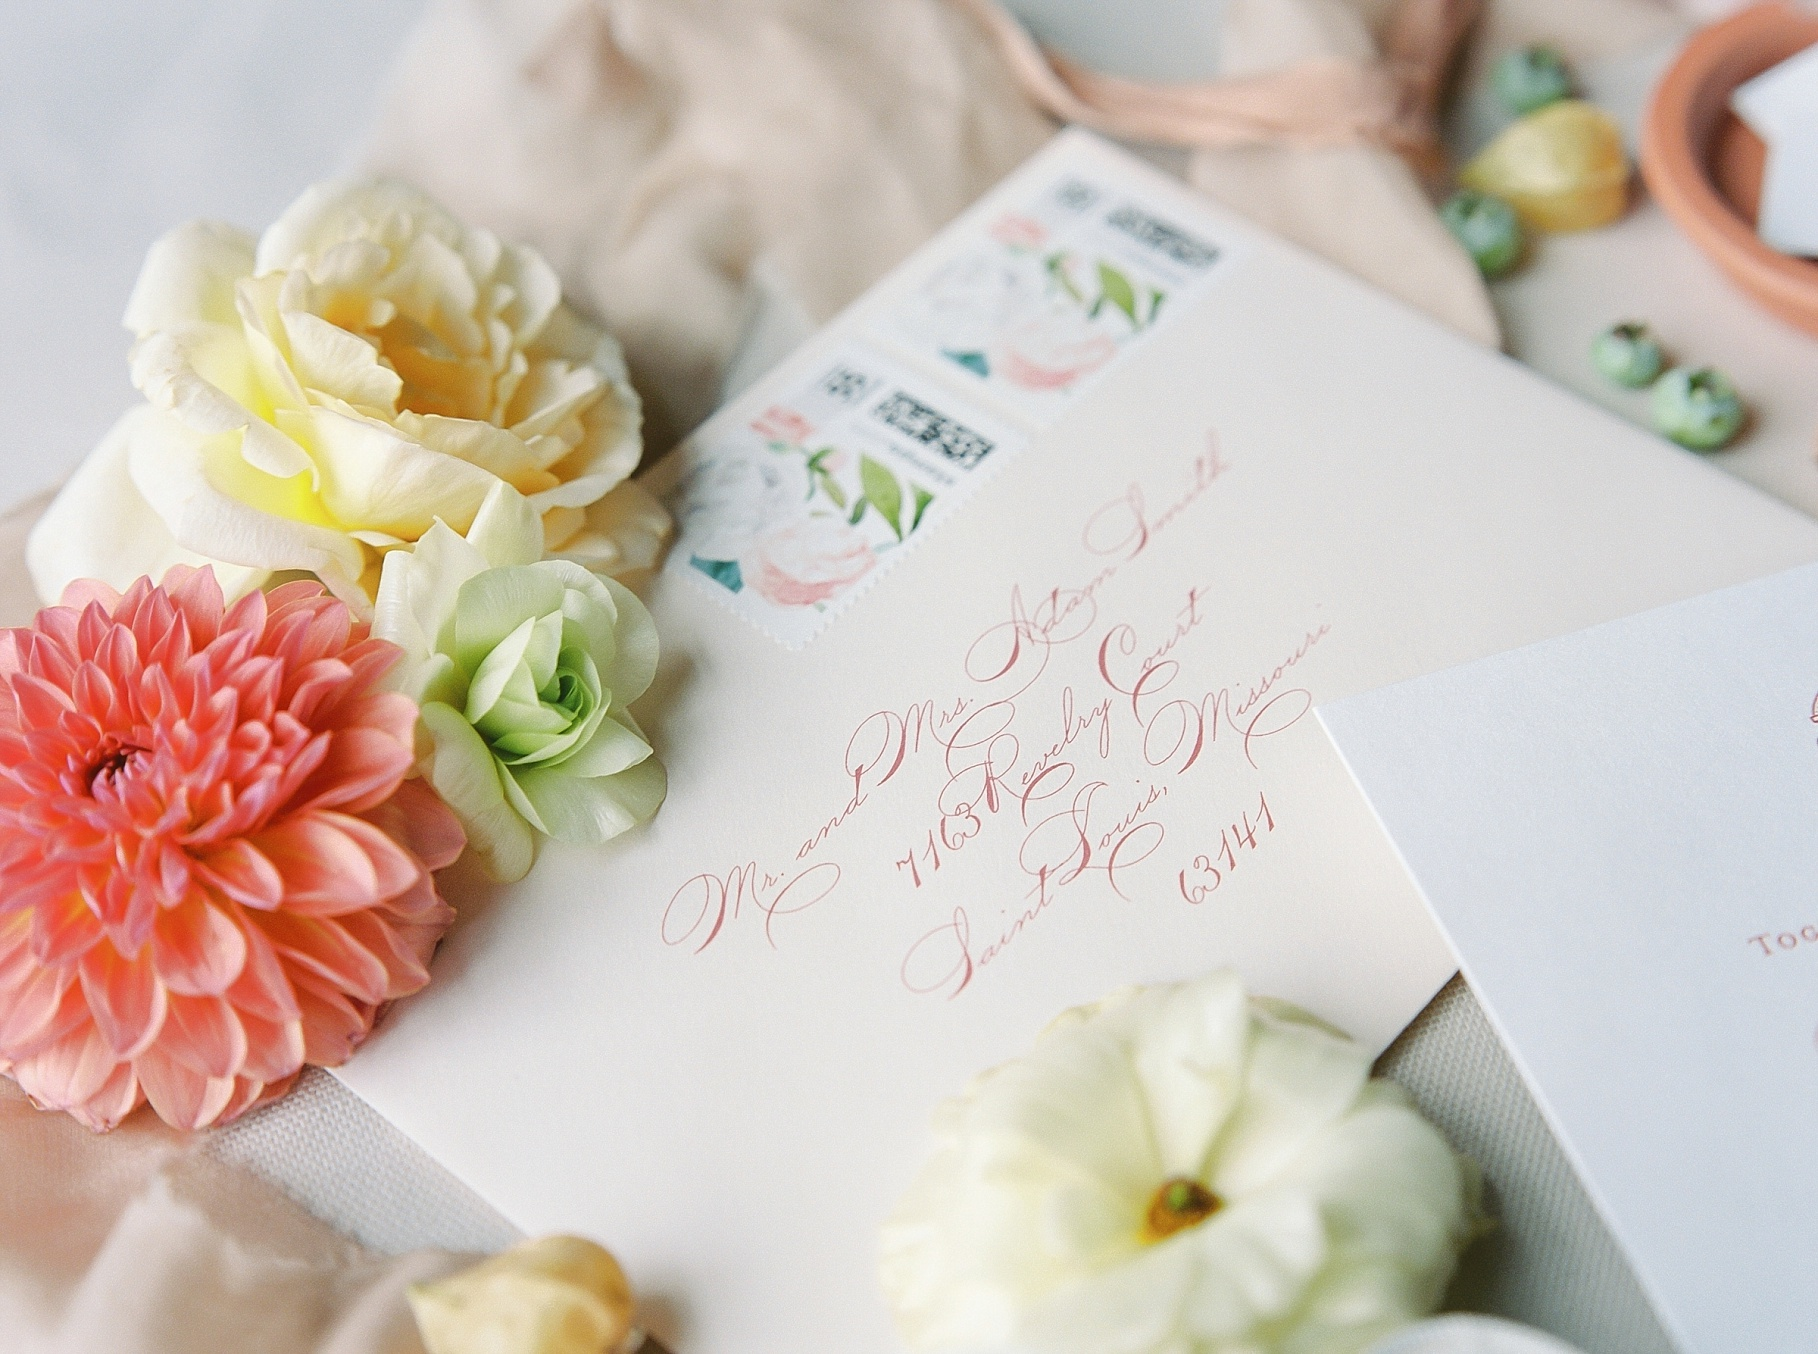 Late Summer Wedding With Pastel Toned Soiree at Blue Bell Farm by Kelsi Kliethermes Photography Best Columbia Missouri Wedding Photographer_0002.jpg